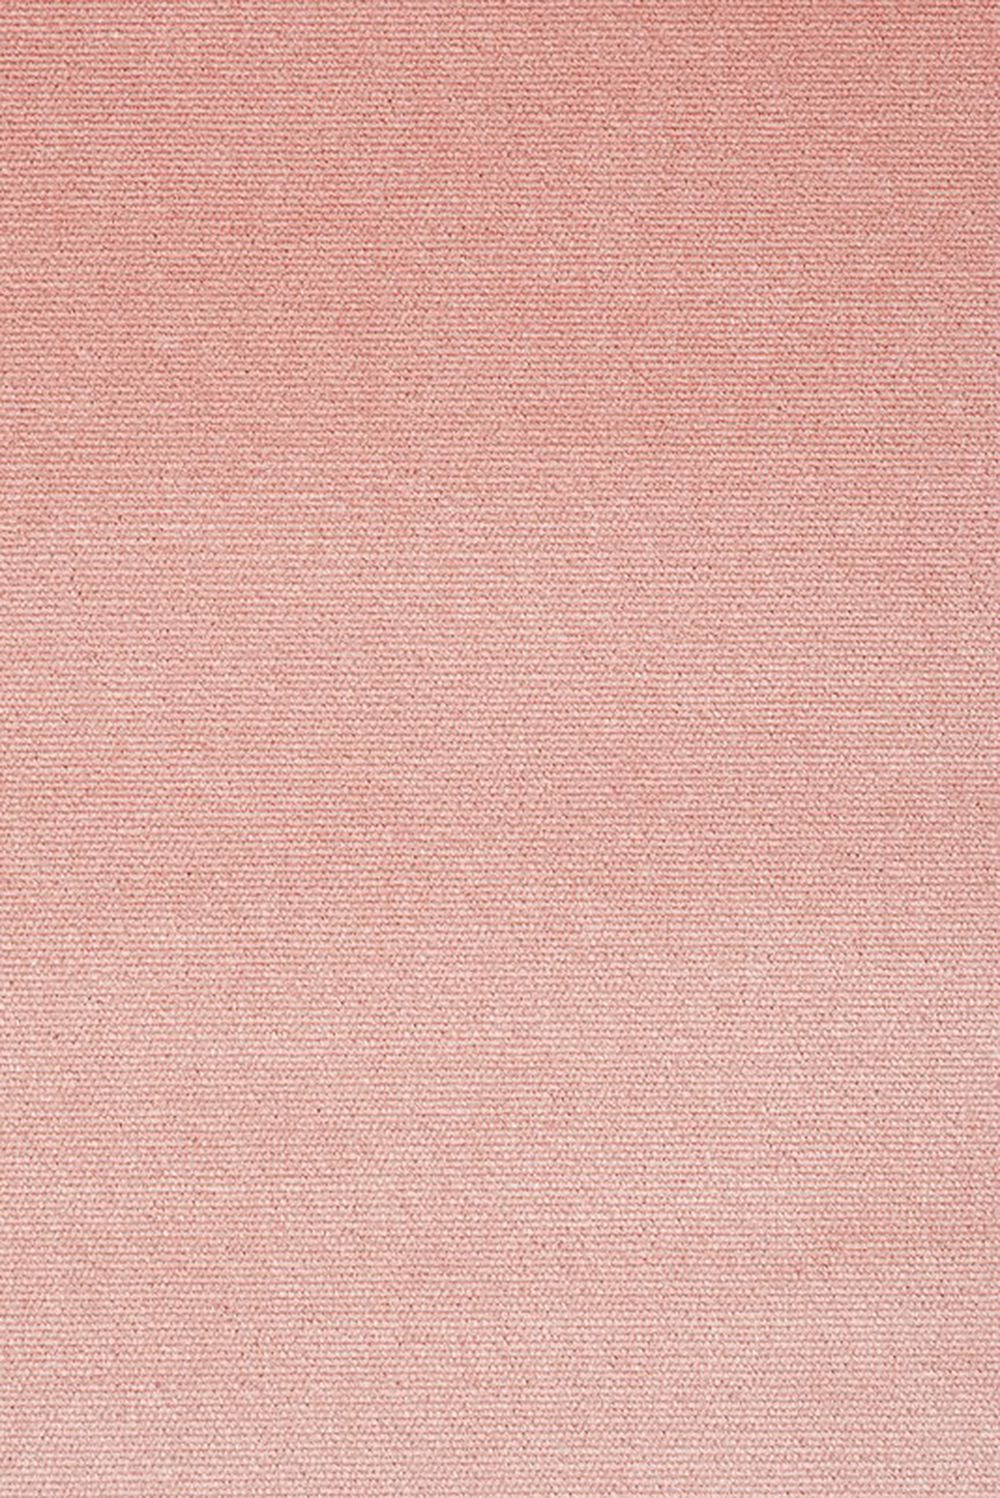 Photo of the fabric South Beach Flamingo swatch by Mokum. Use for Upholstery Heavy Duty, Accessory. Style of Plain, Velvet